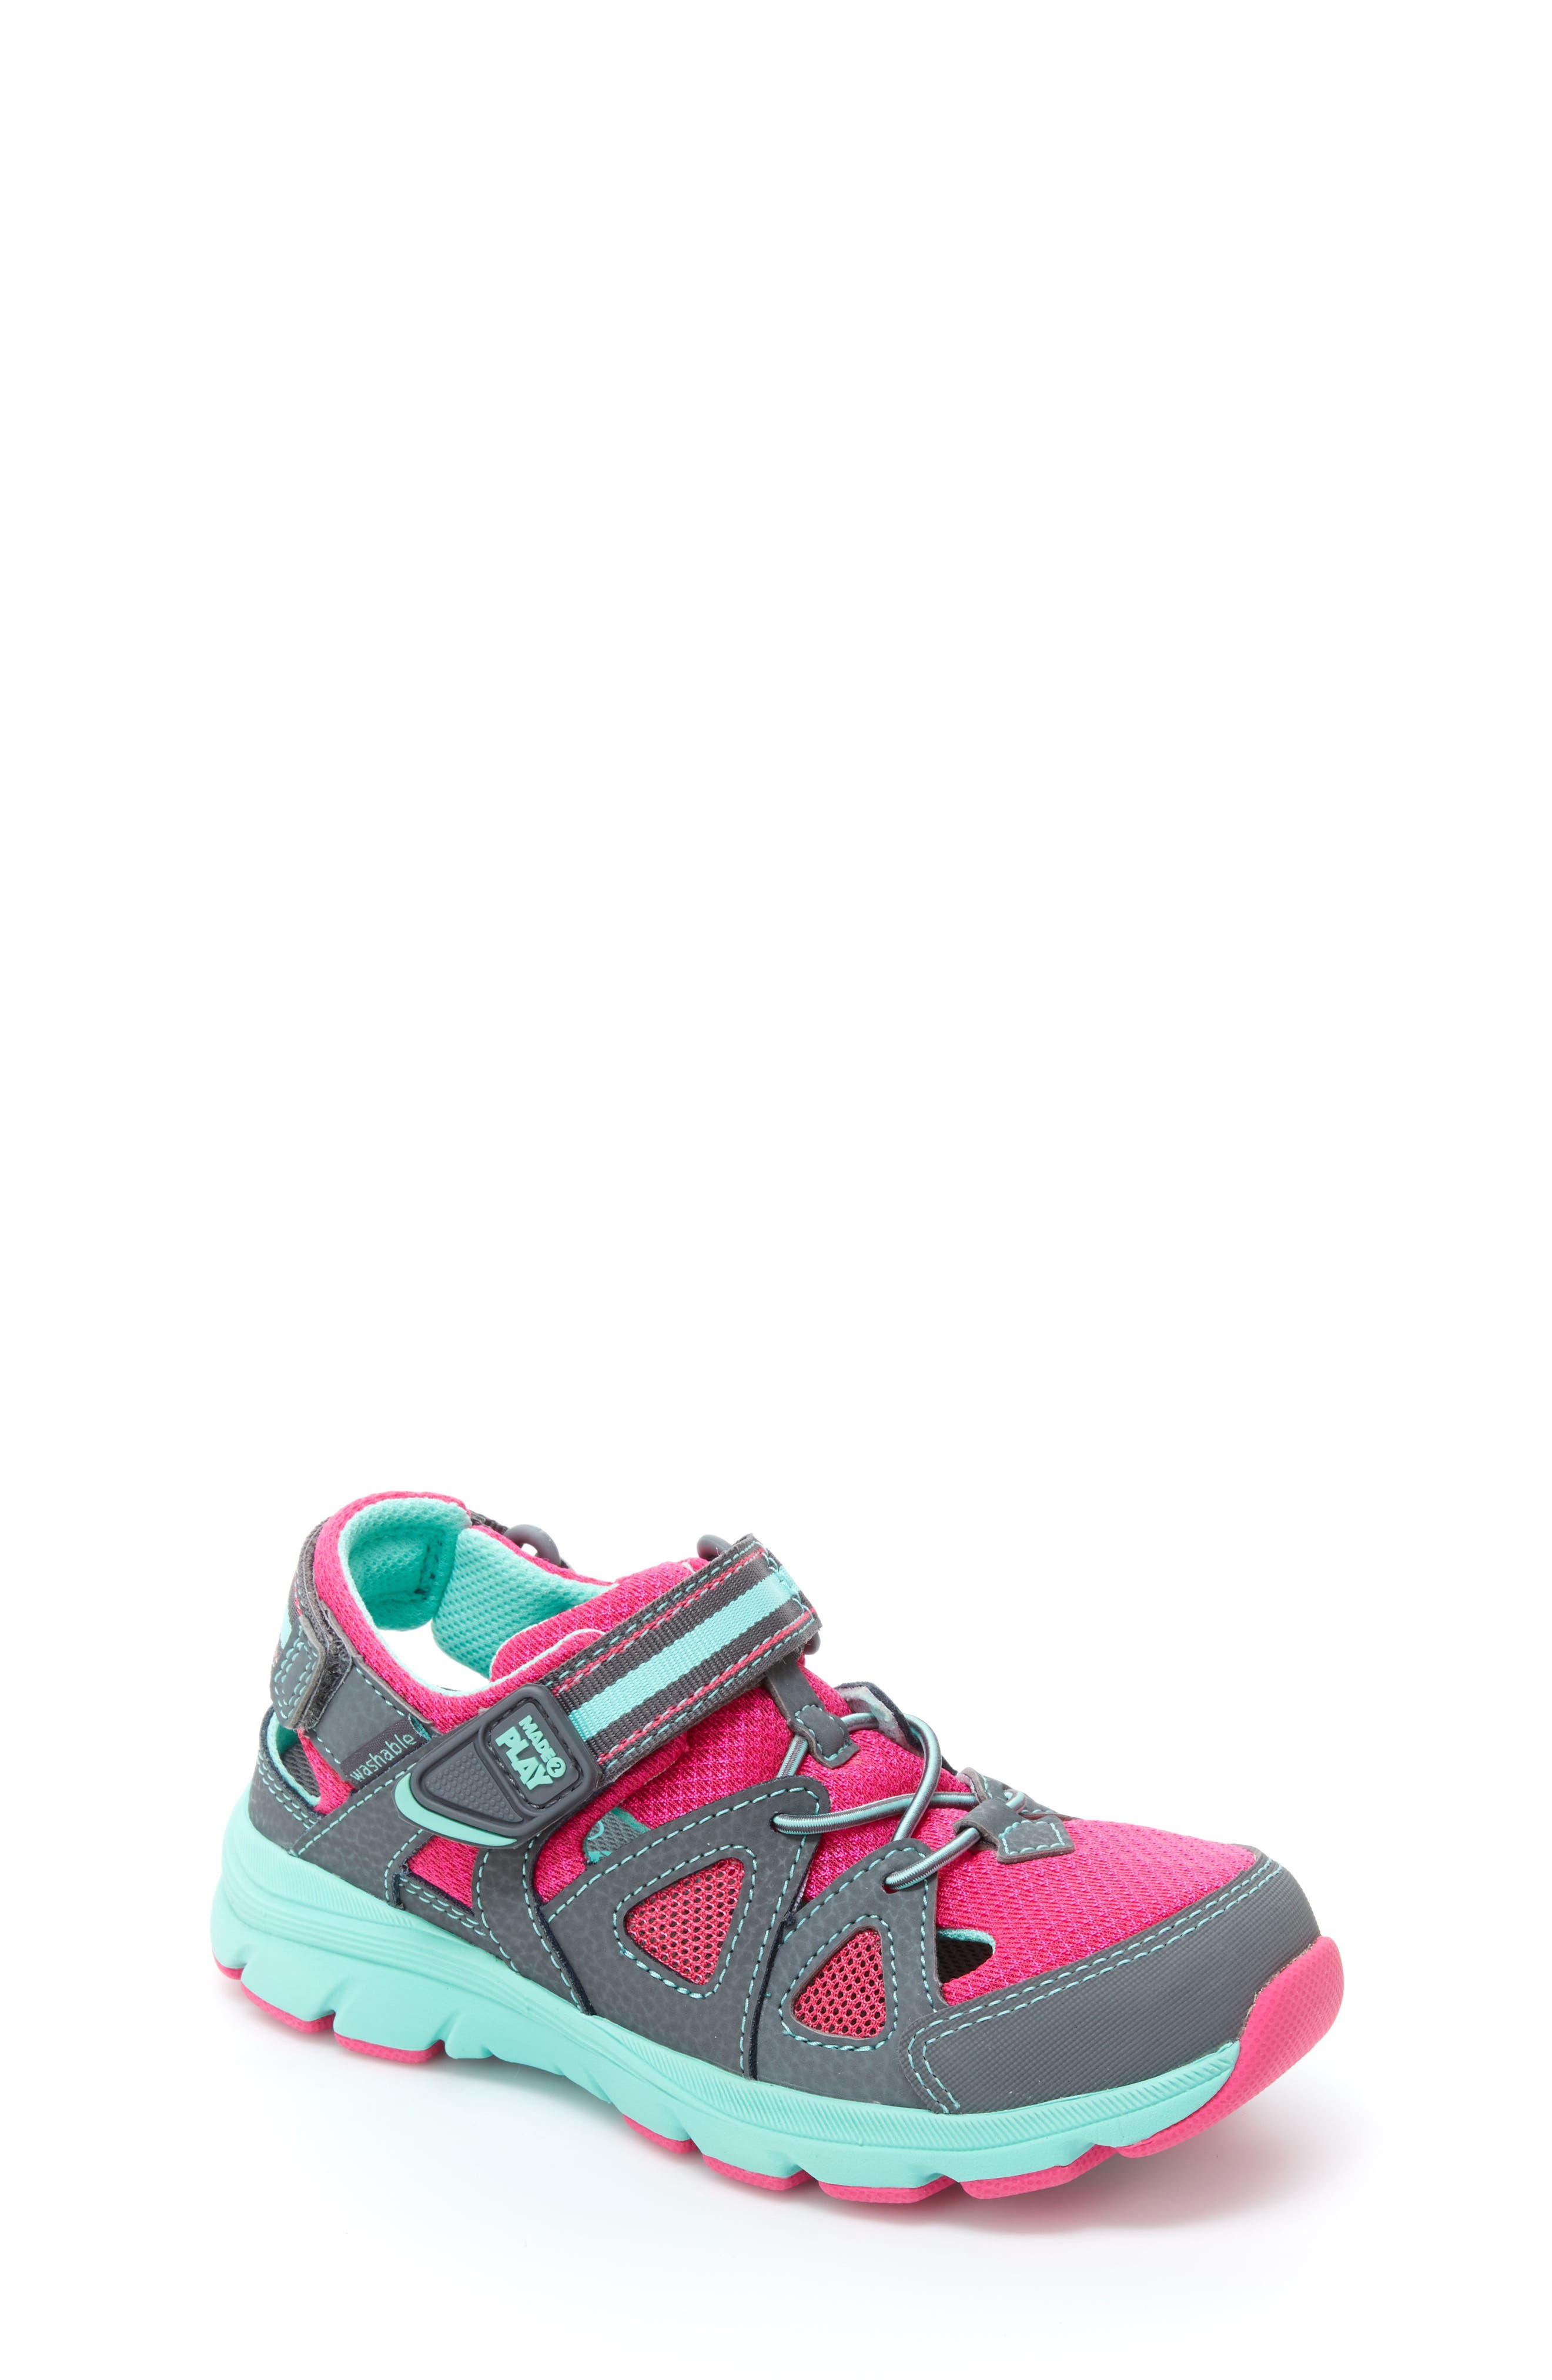 STRIDE RITE,                             Made2Play<sup>®</sup> Ryder Washable Sneaker,                             Main thumbnail 1, color,                             020